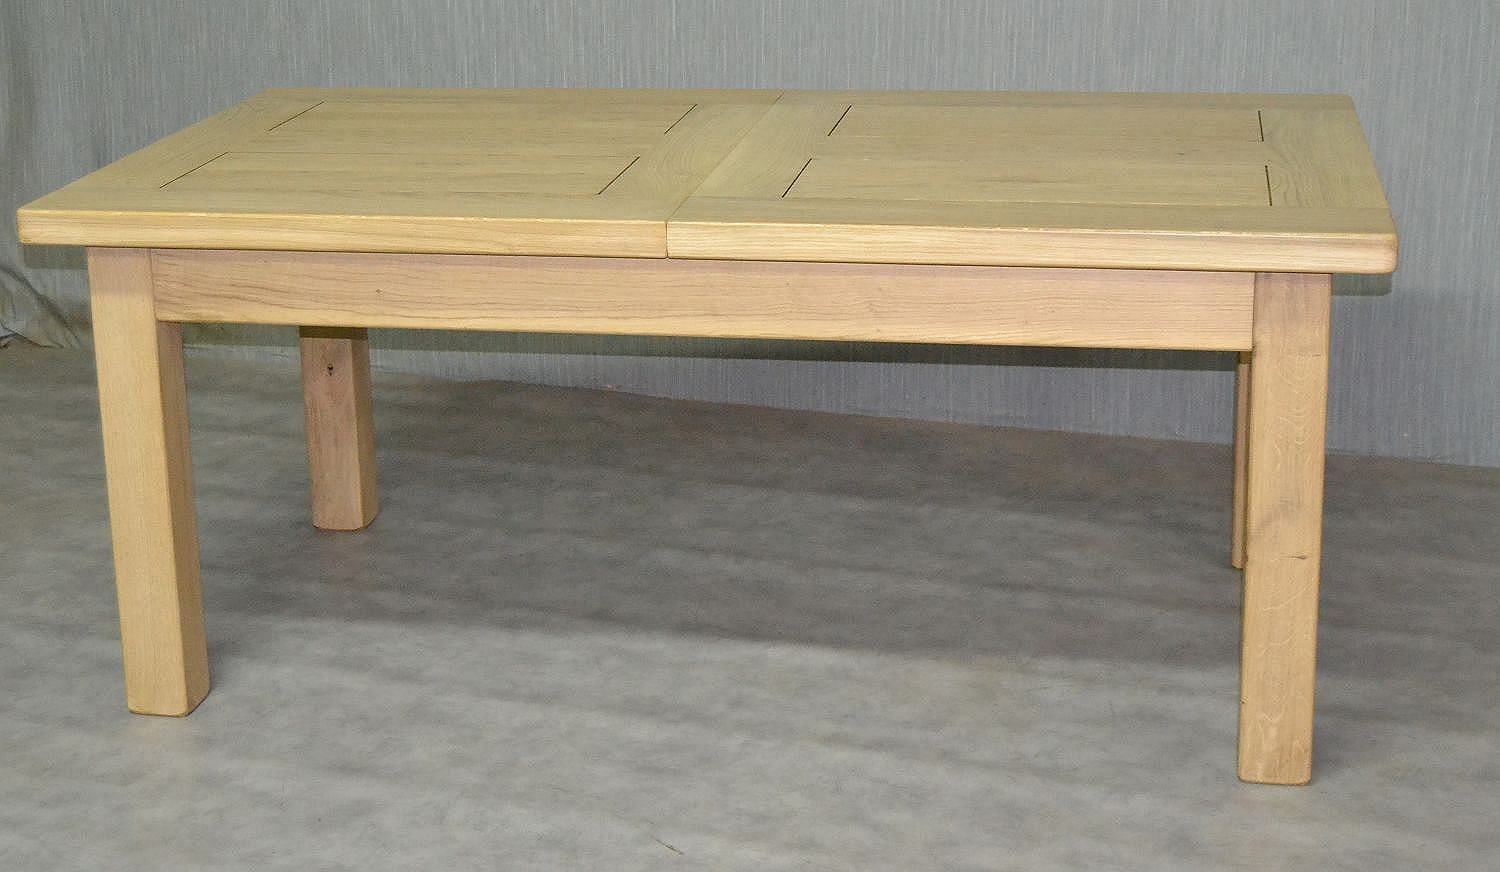 Table bois massif rallonge for Table en bois